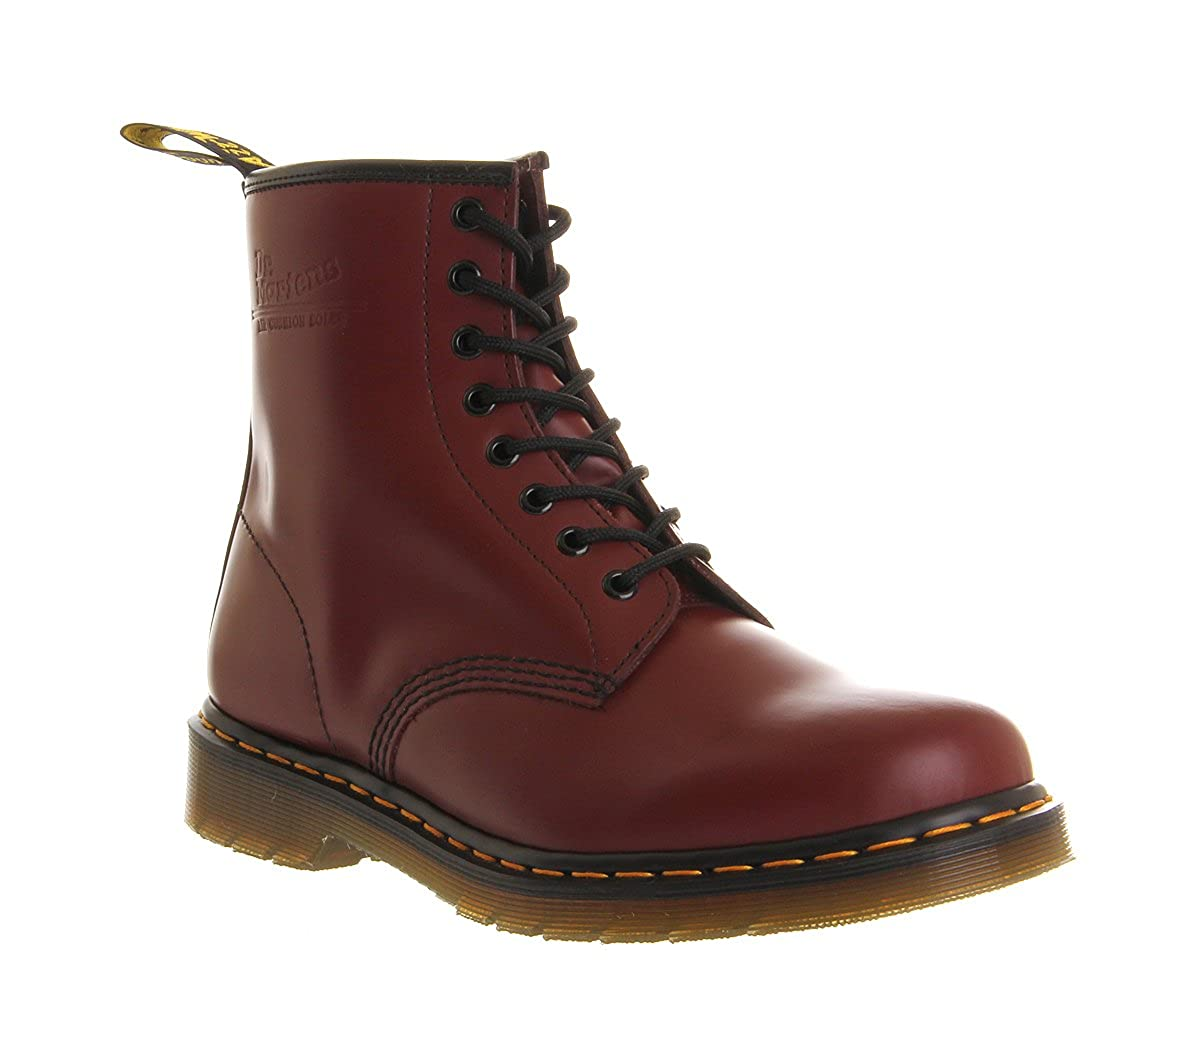 Dr. Martens 1460 Stiefel (Cherry rot - Rot)